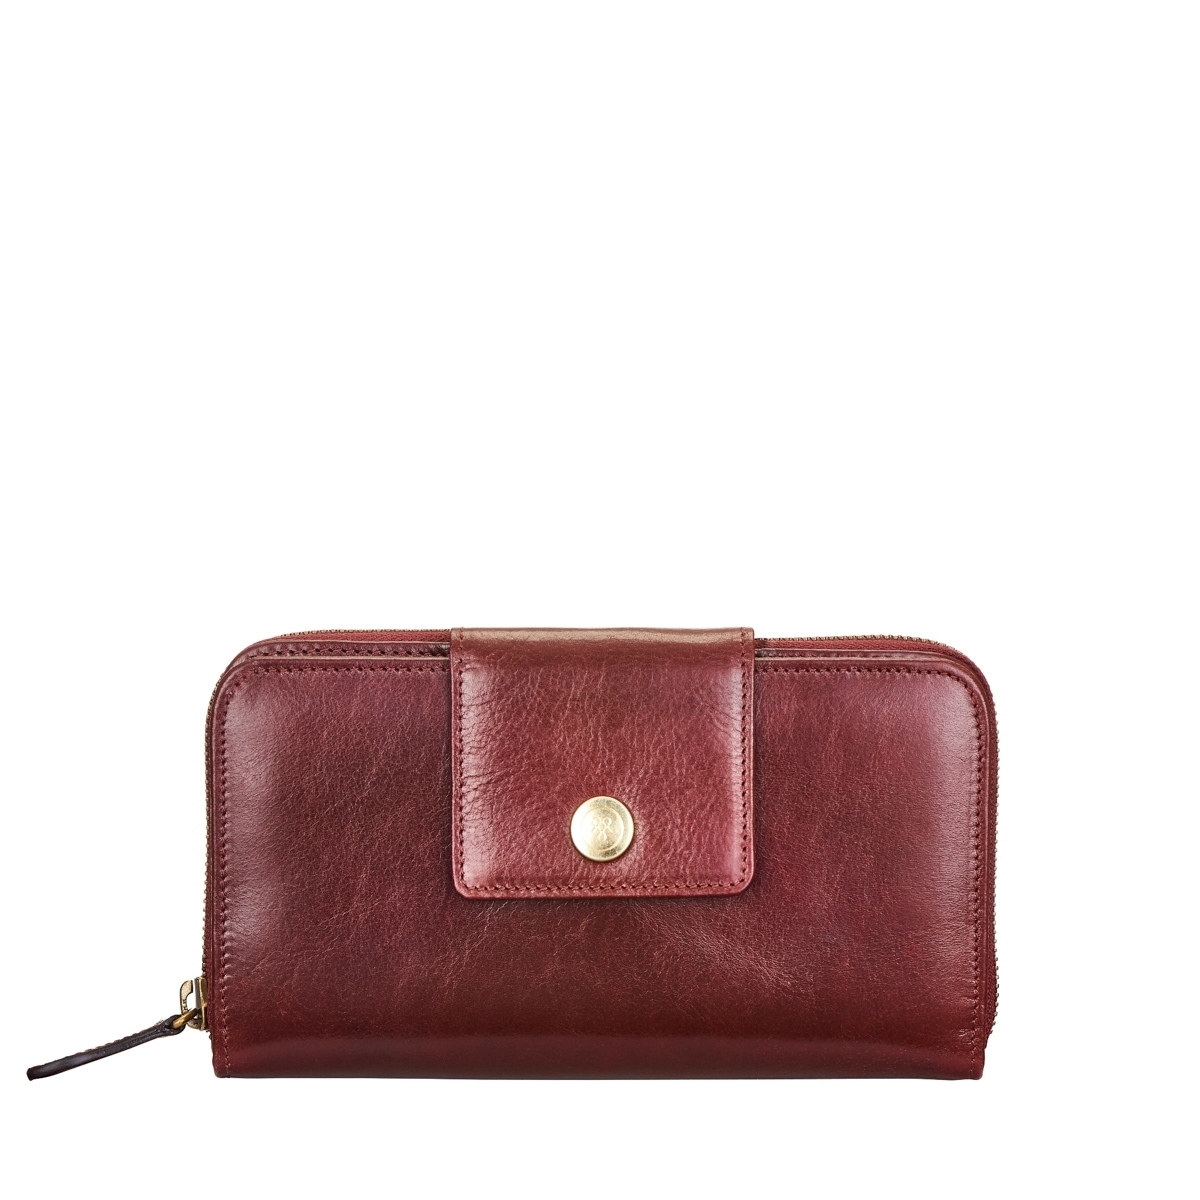 LARGE ITALIAN LEATHER ZIP PURSE